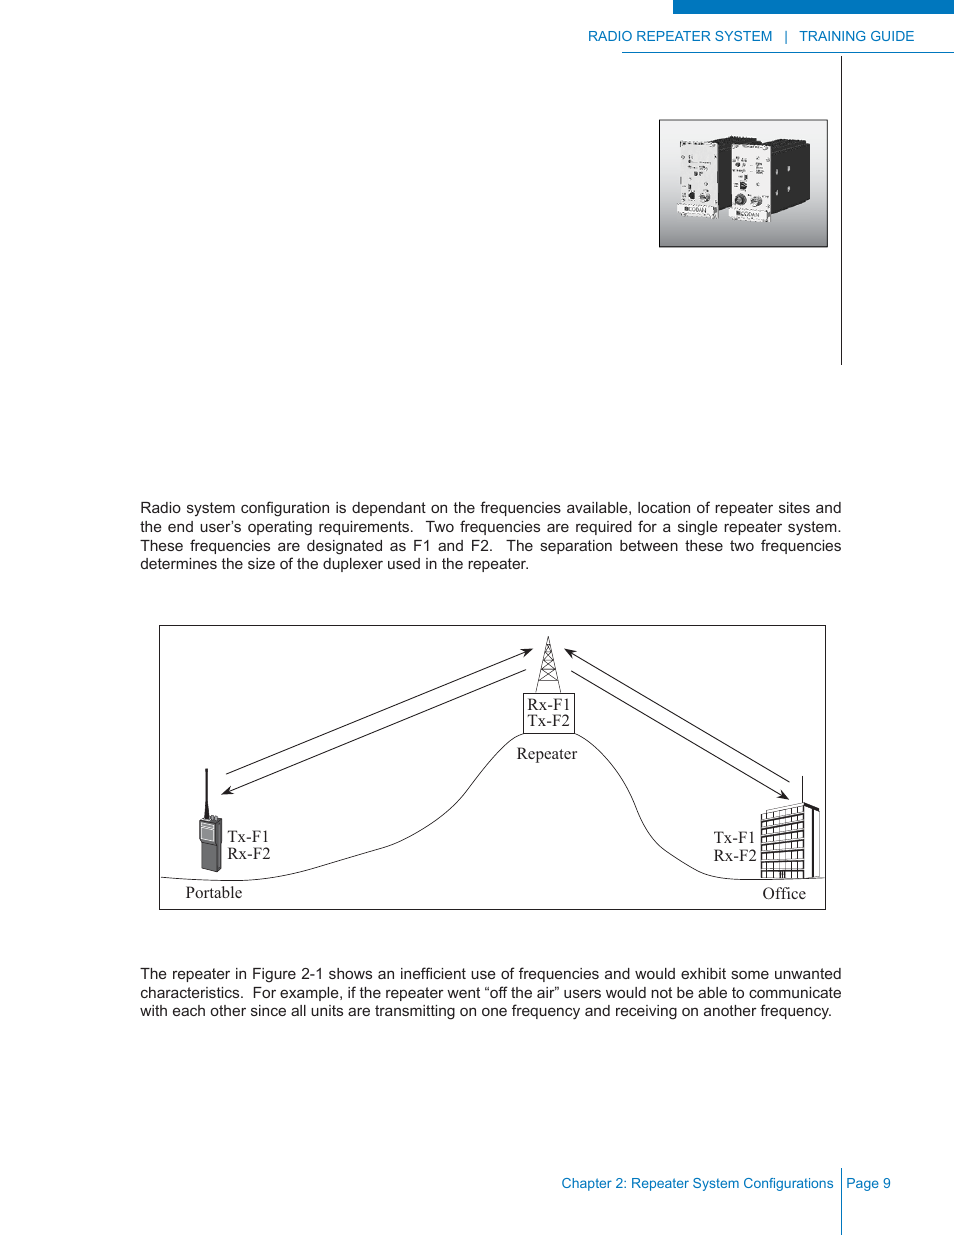 Chapter 2: repeater system configurations, Determining configuration